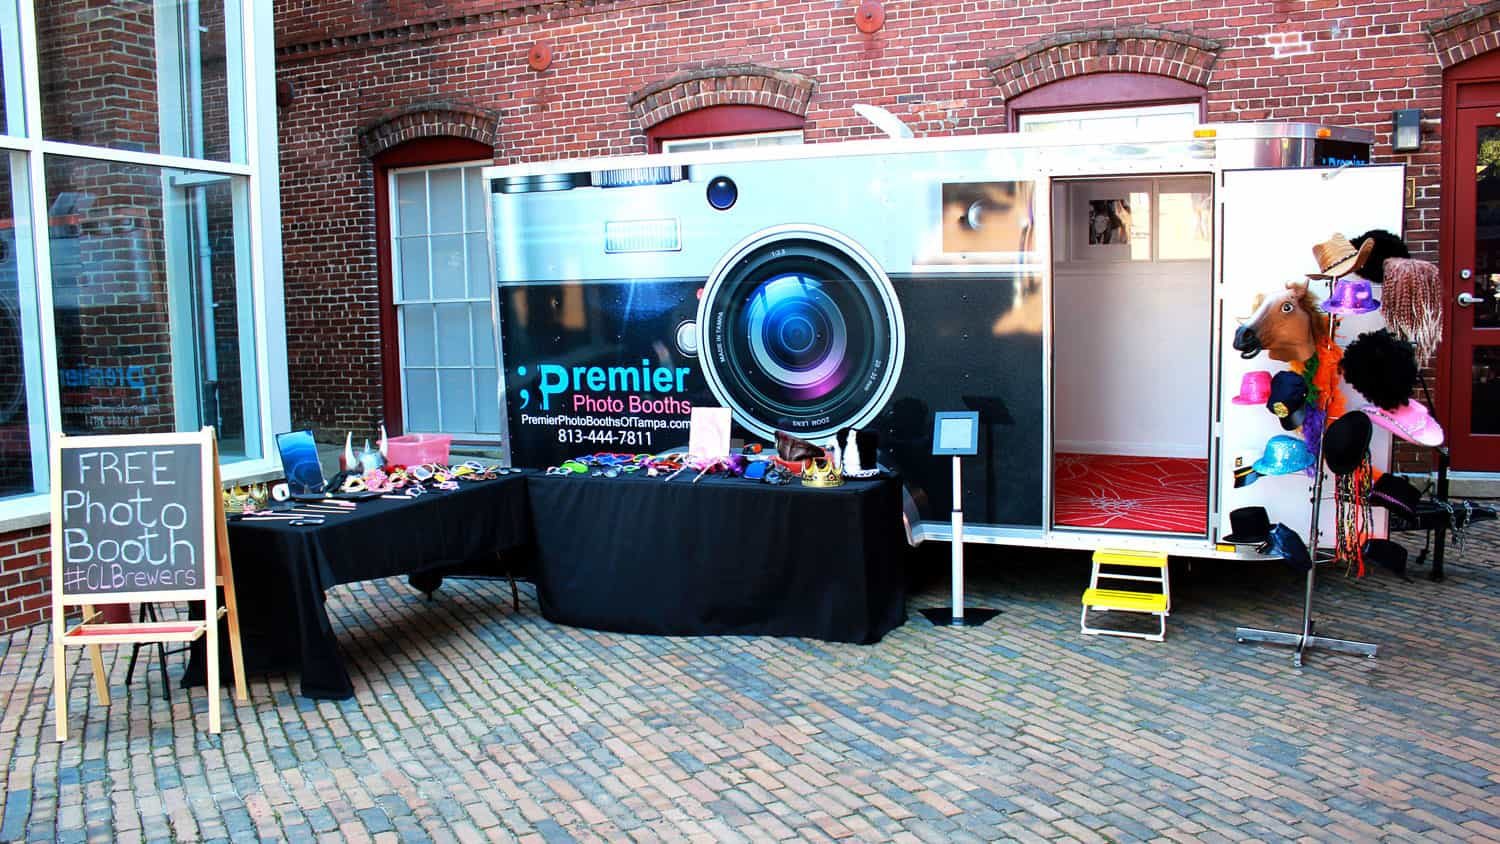 Premier Photo Booths Tampa Bay S Most Socially